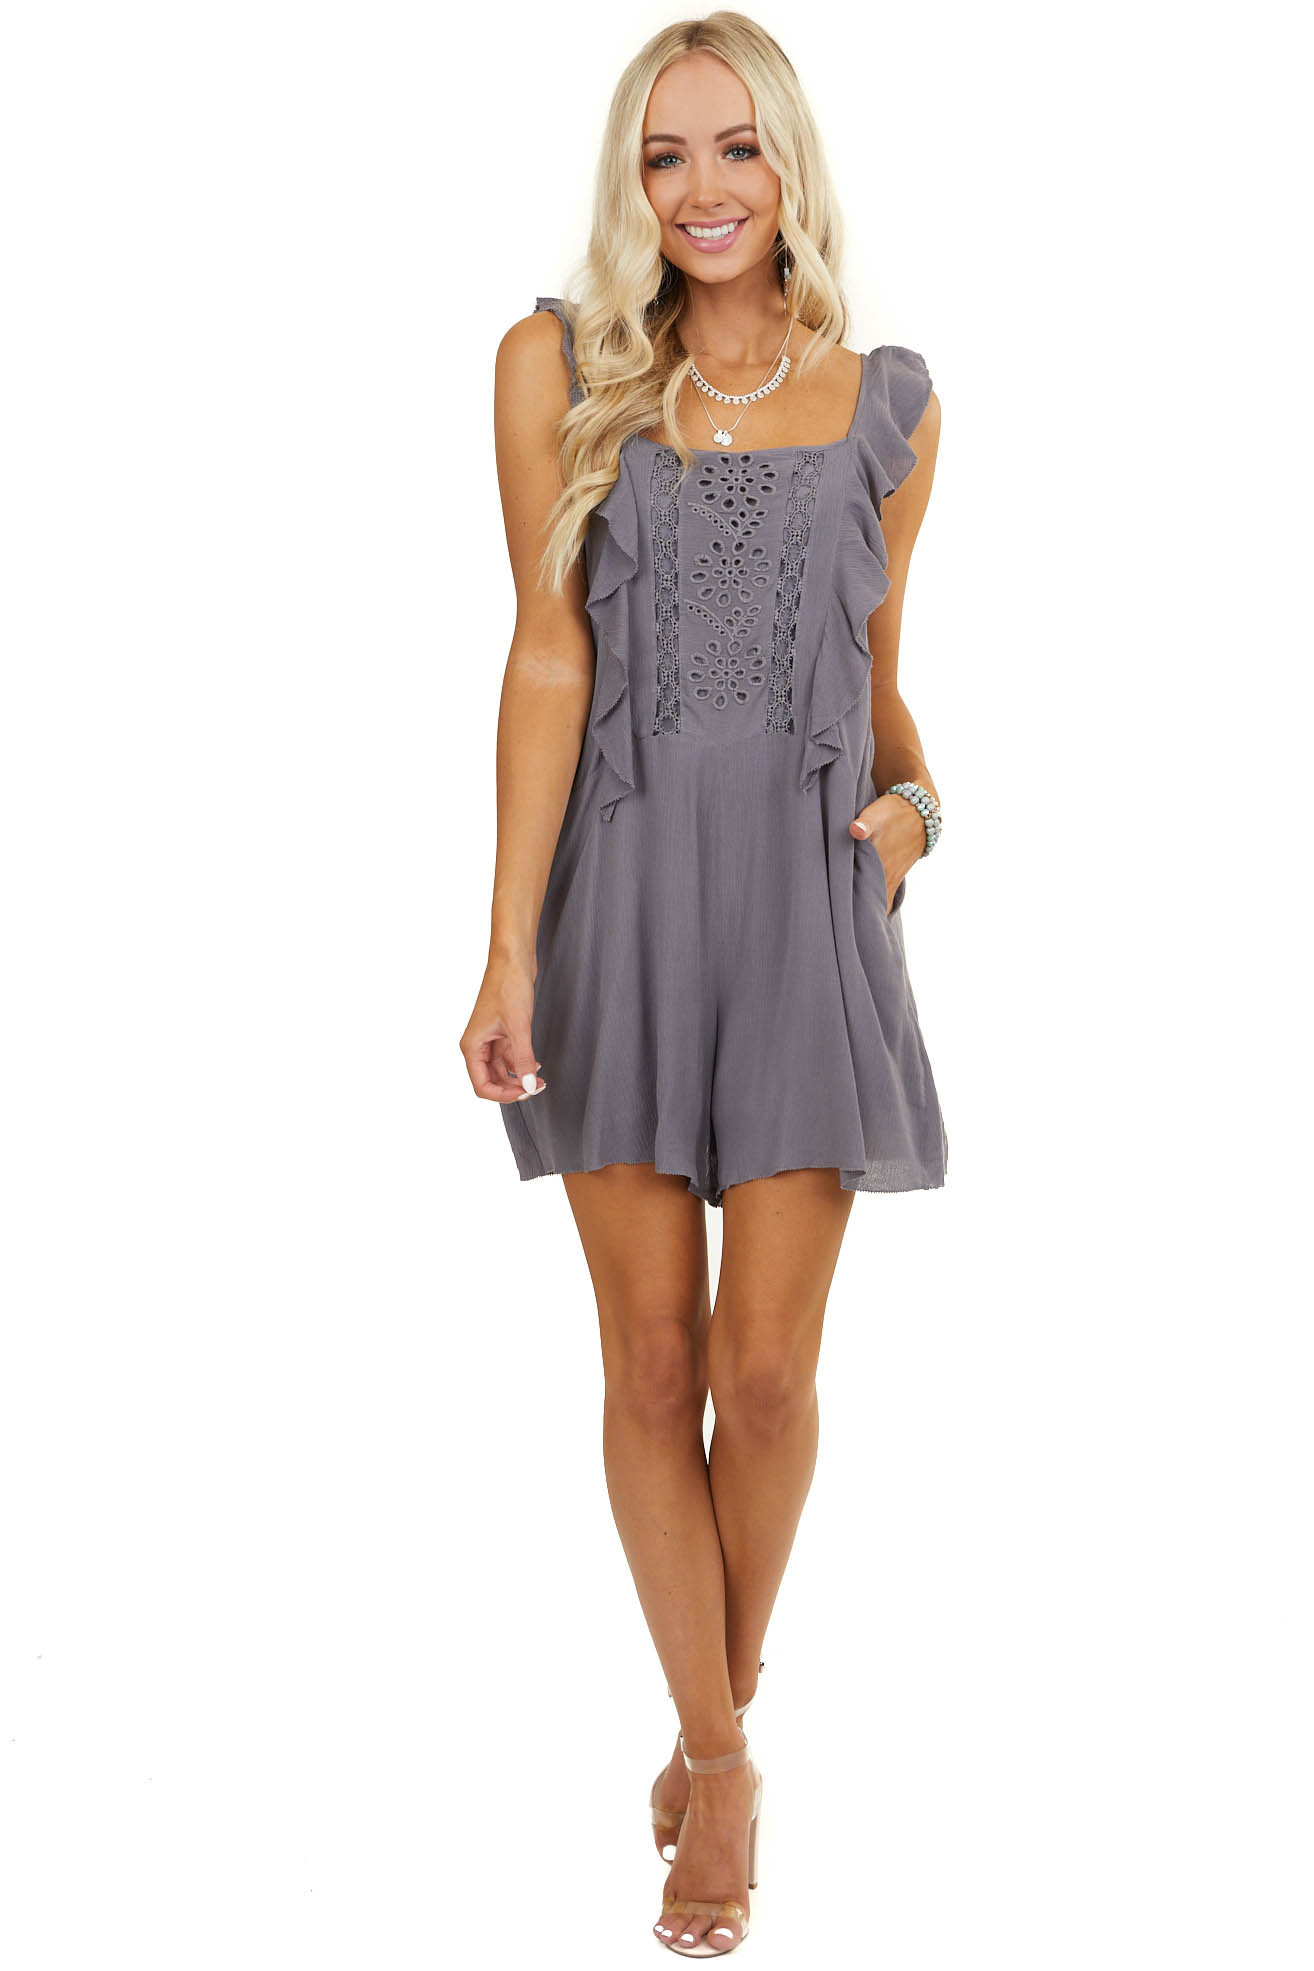 Charcoal Sleeveless Romper with Ruffle and Lace Details